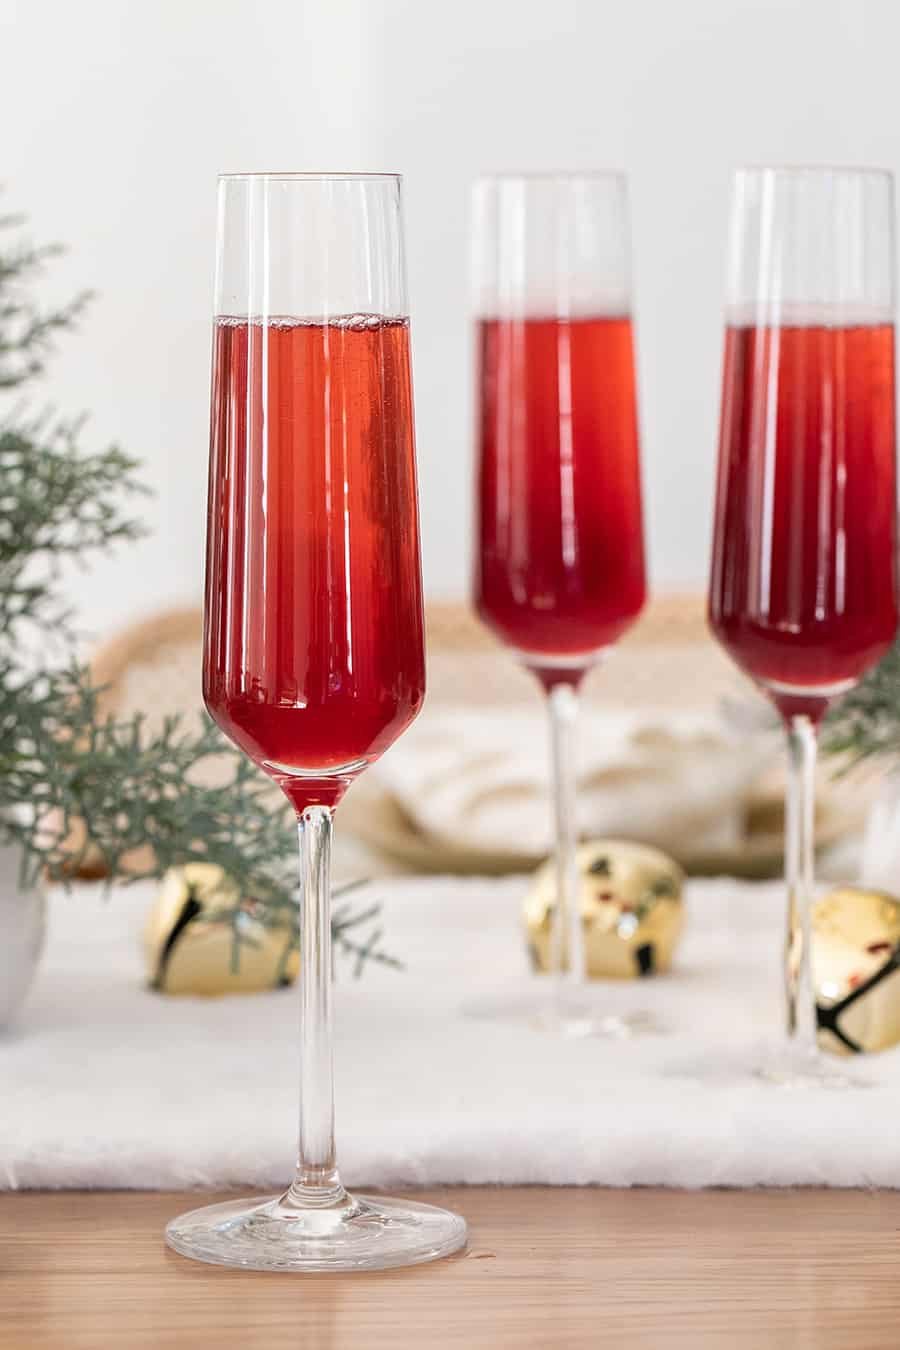 Christmas mimosa made with cranberry juice and Champagne